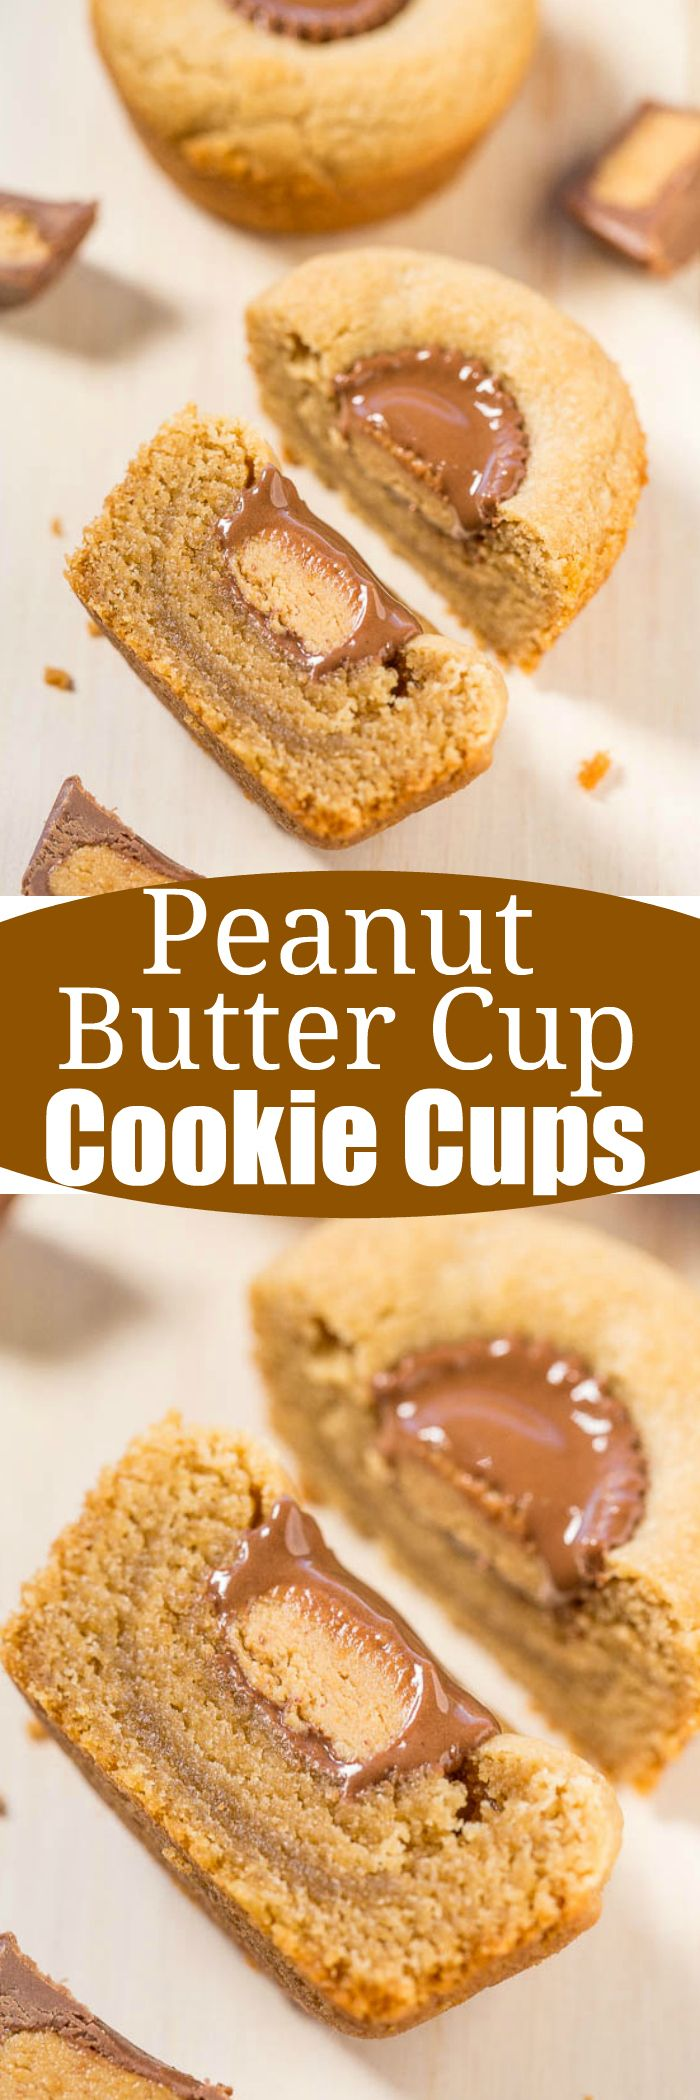 Peanut Butter Cup Cookie Cups - Have problems with cookies spreading? It's impossible with these easy, no-mixer, goofproof peanut butter cookies baked in a muffin tin!! The peanut butter cups make them SO irresistible!!